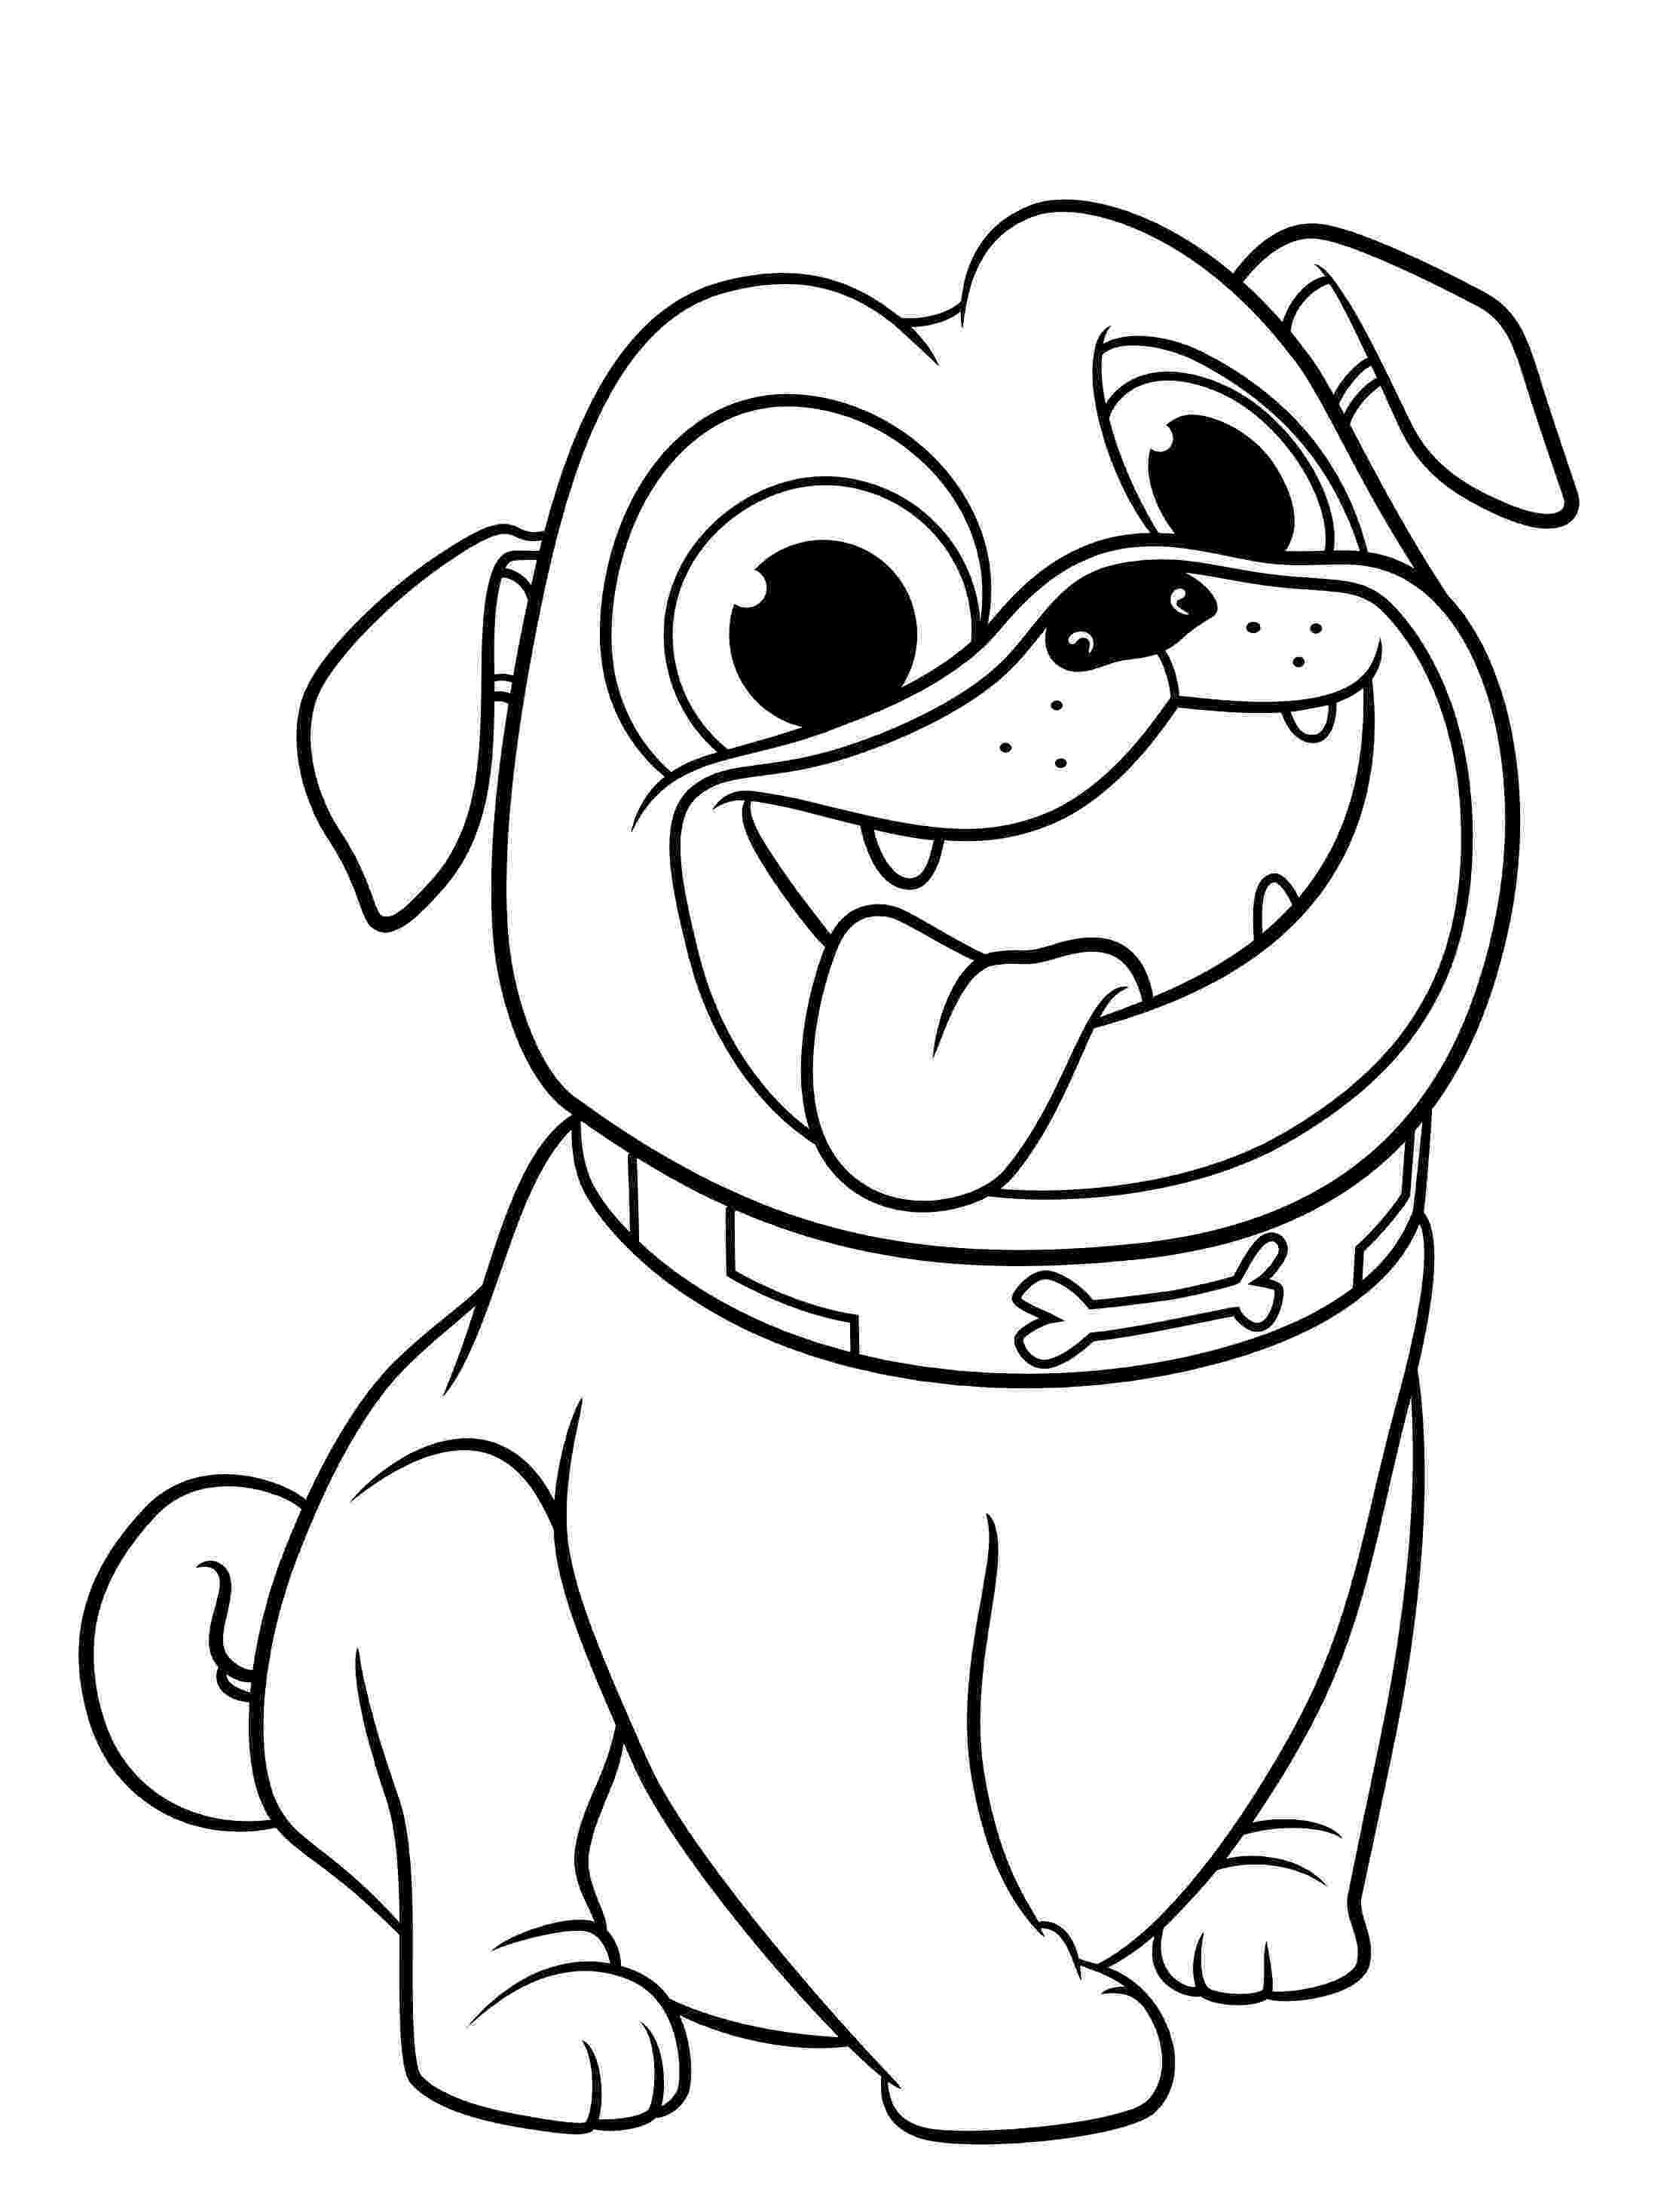 free dog coloring pages cute dog coloring pages to download and print for free pages dog free coloring